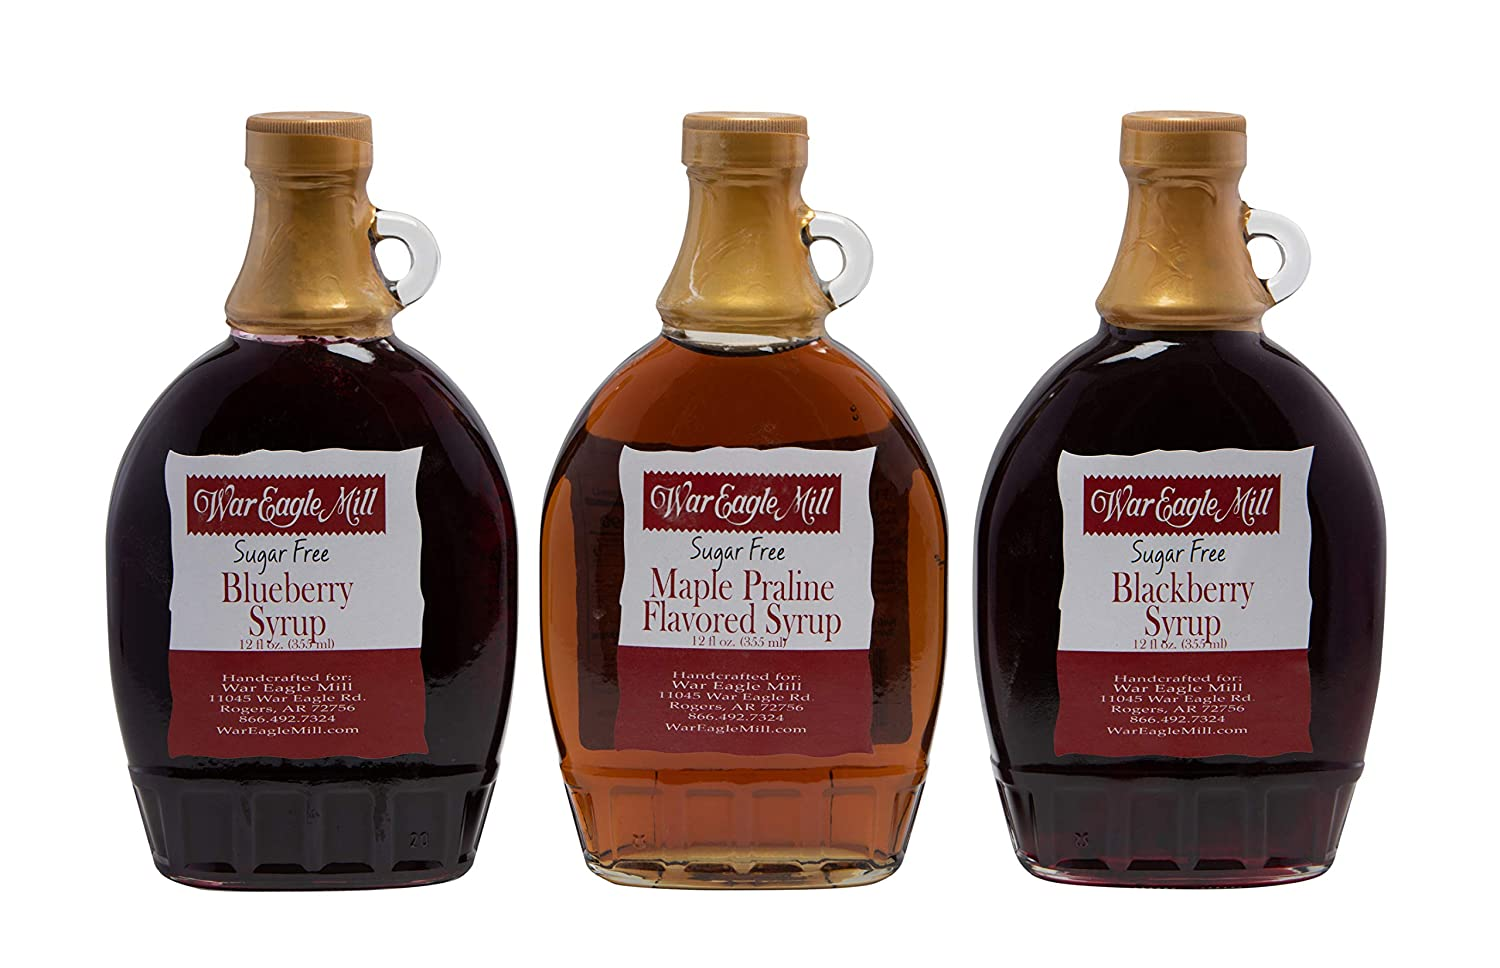 War Eagle Mill 3 Pack Popular overseas Sugar Free Max 62% OFF Syrups oz. Praline 12 - Maple